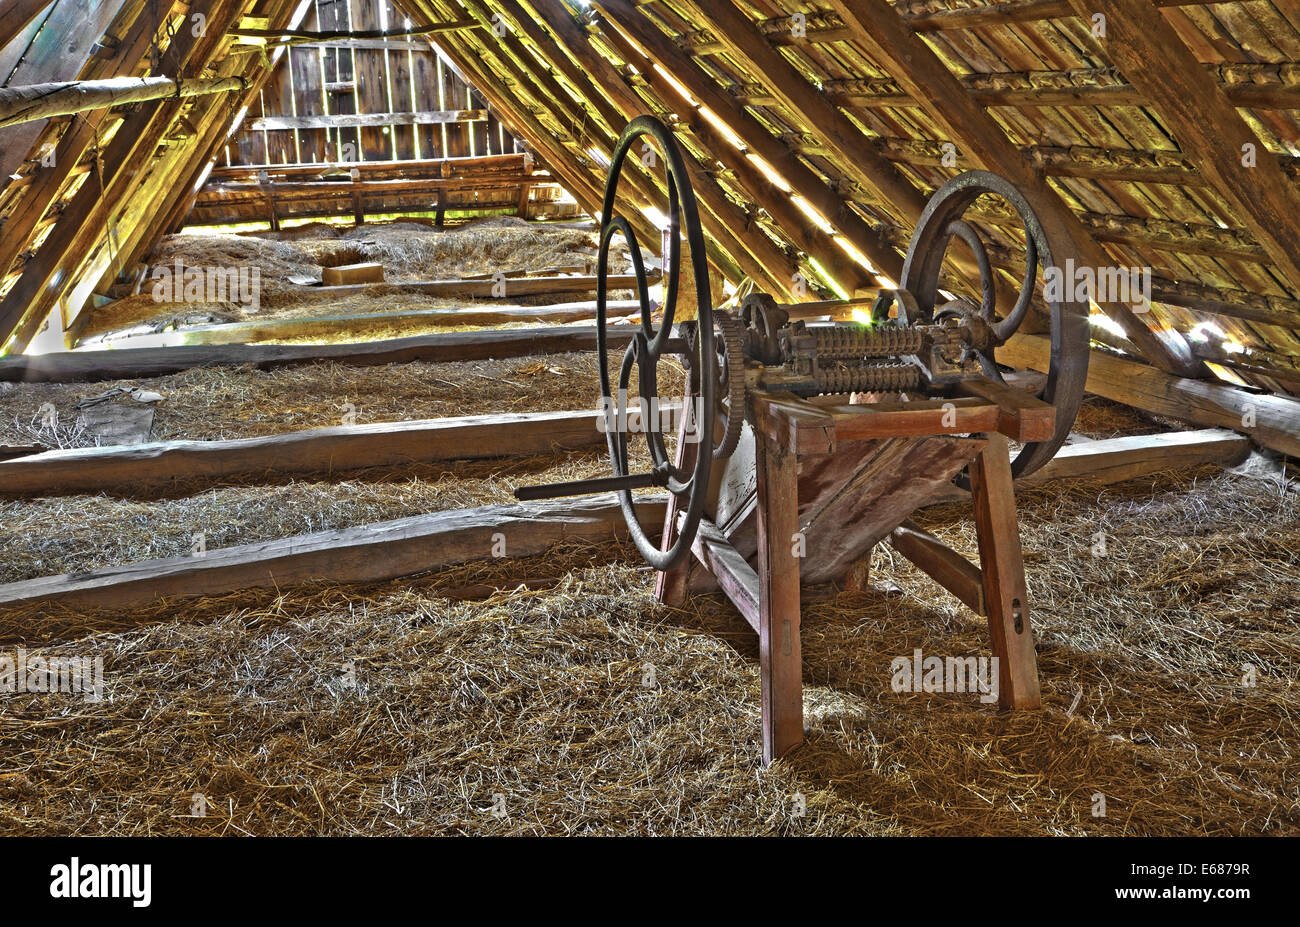 old chaff machine on the billet of village house in Slovakia - Stock Image